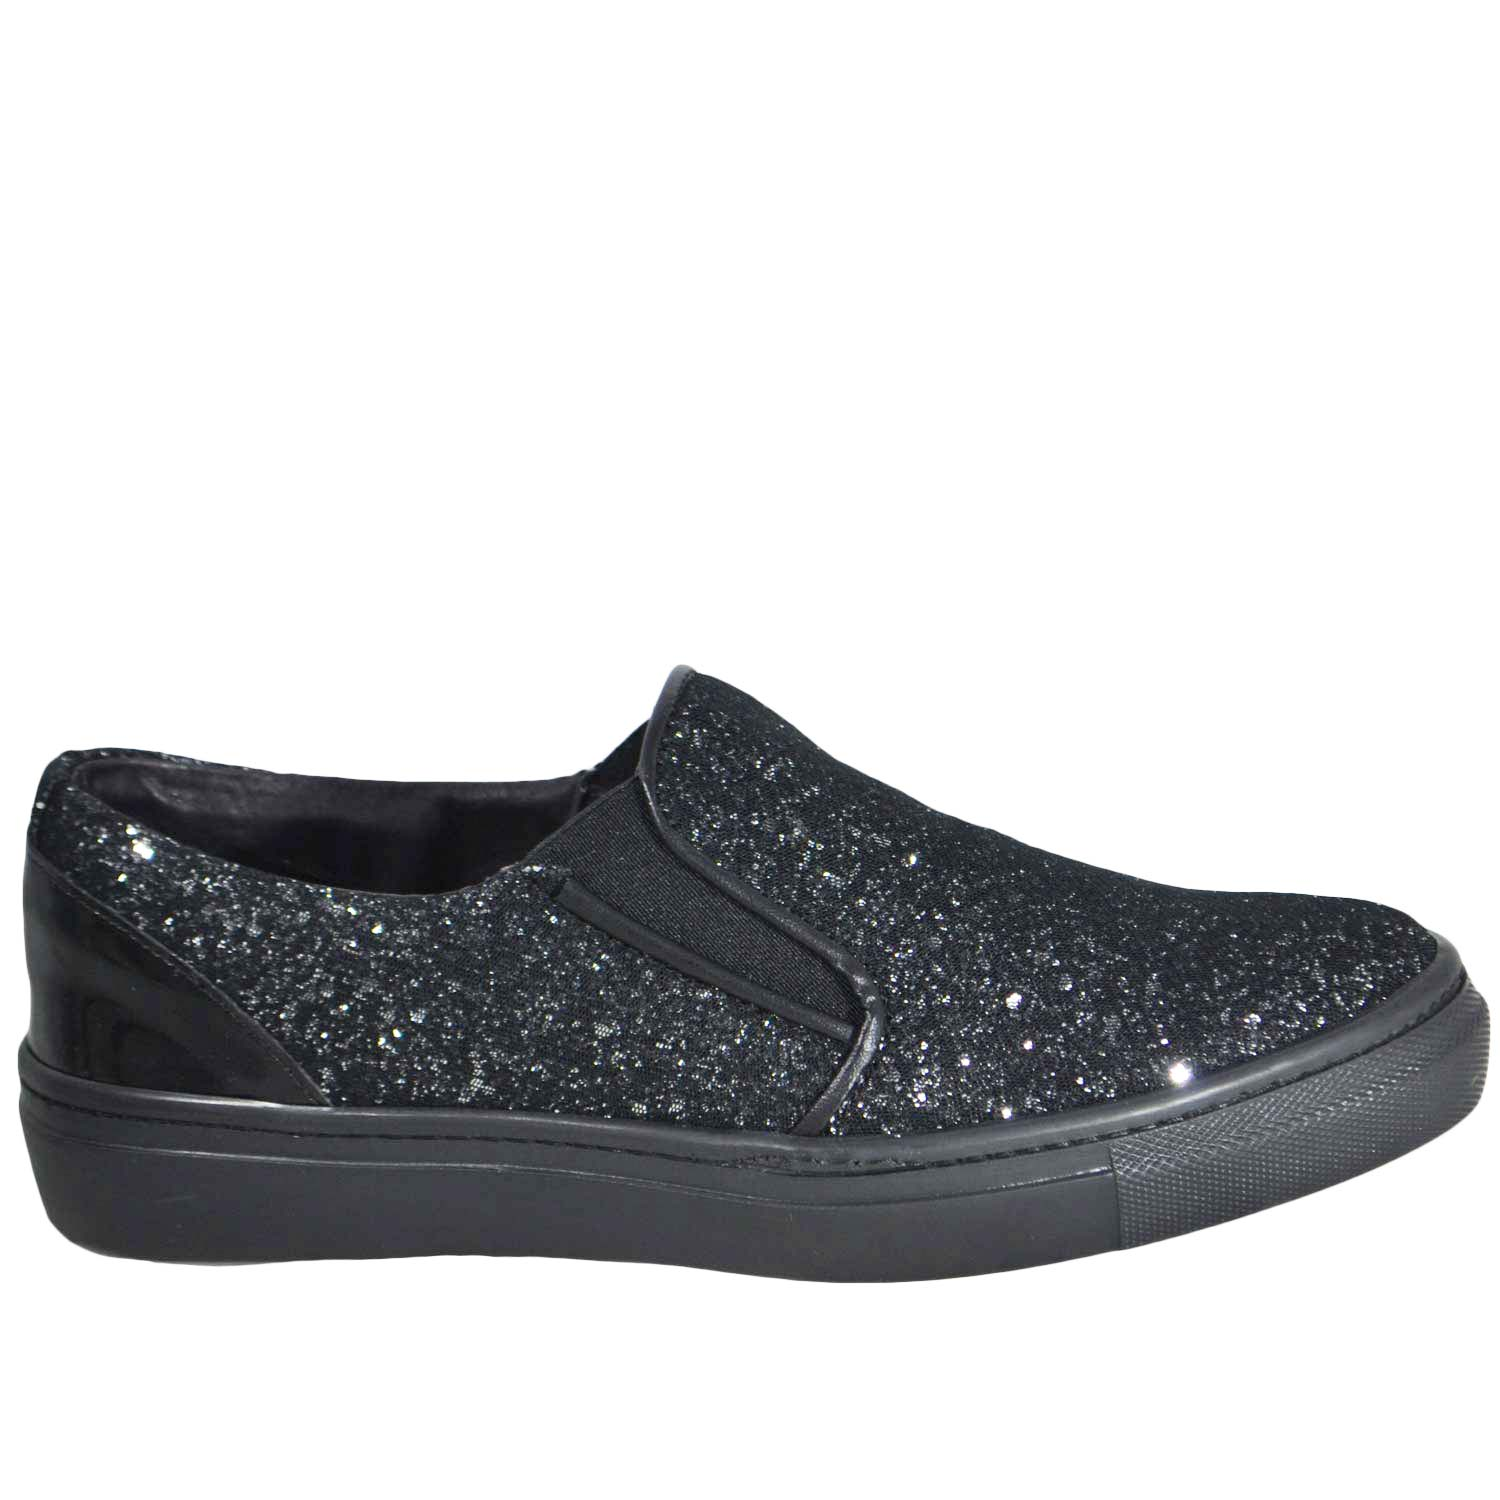 Mocassino Glitter Punta slip on mocassino donna  in vera pelle made in italy risvoltabili fondo running .